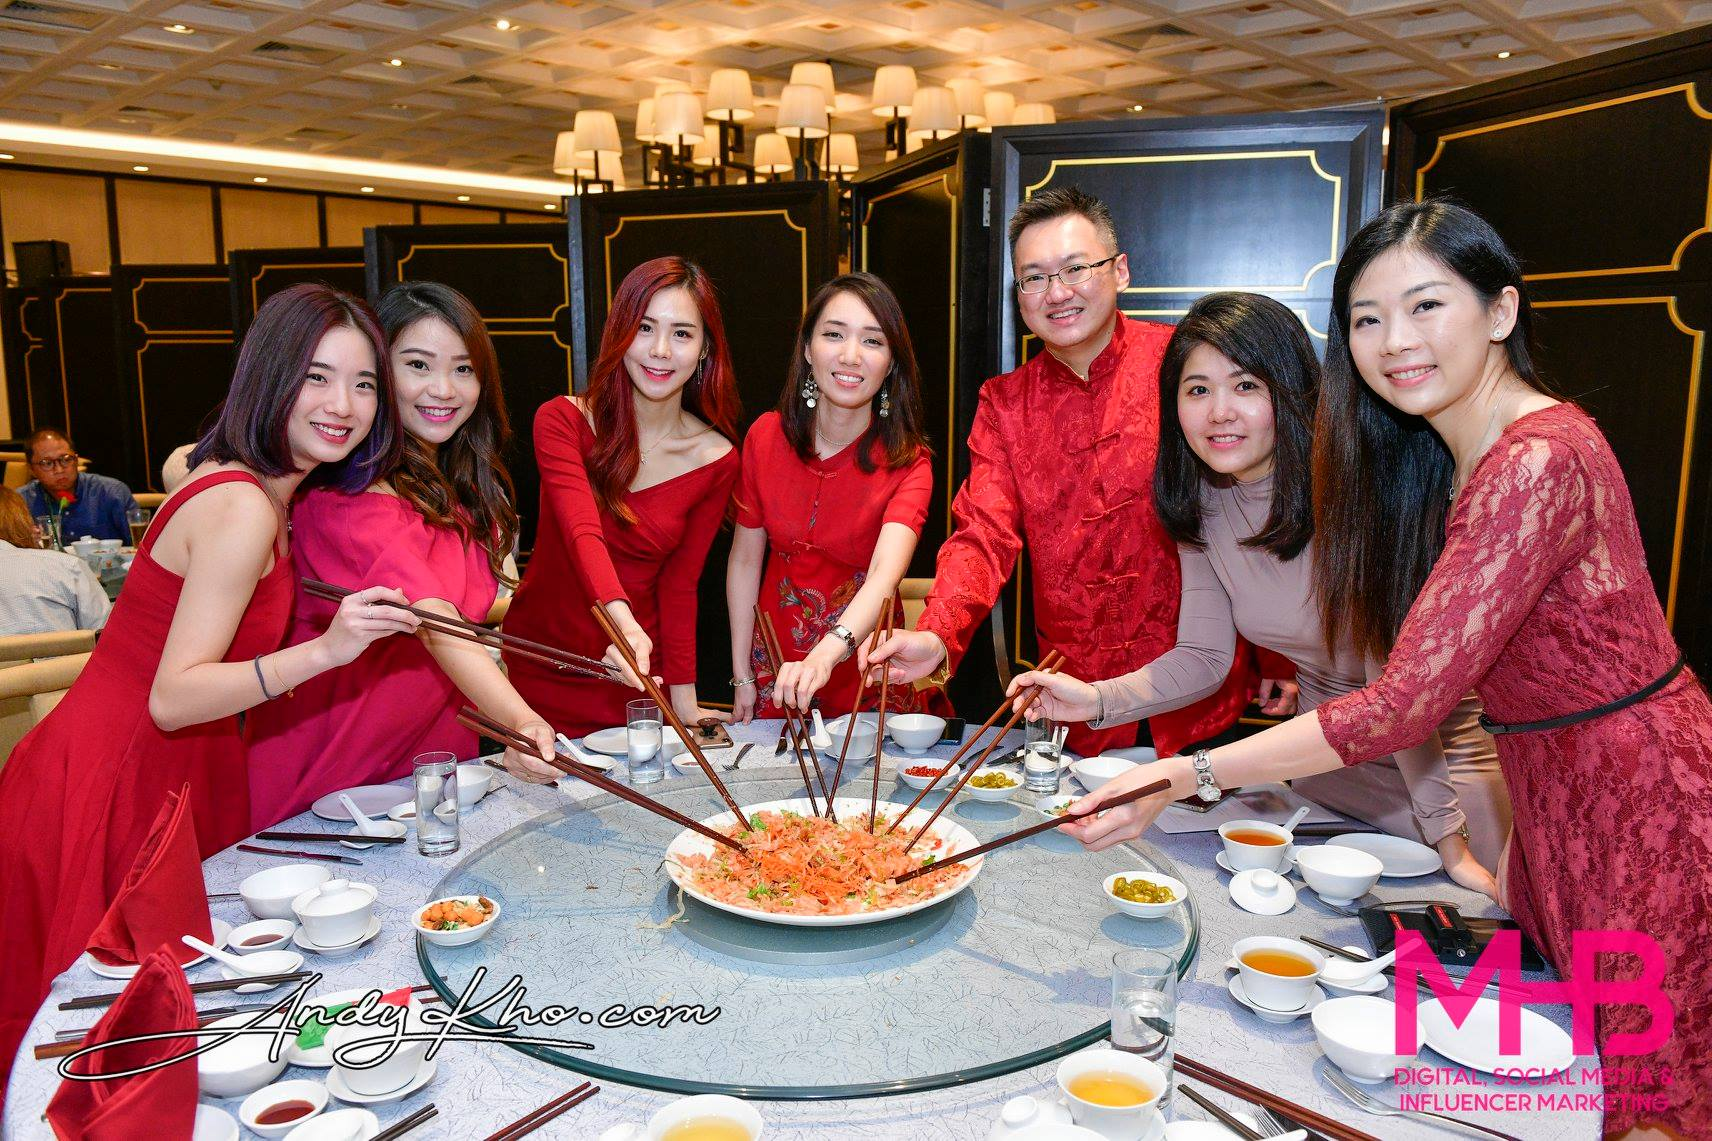 MHB Digital's Chinese New Year Dinner at Zuan Yuan, One World Hotel Petaling Jaya